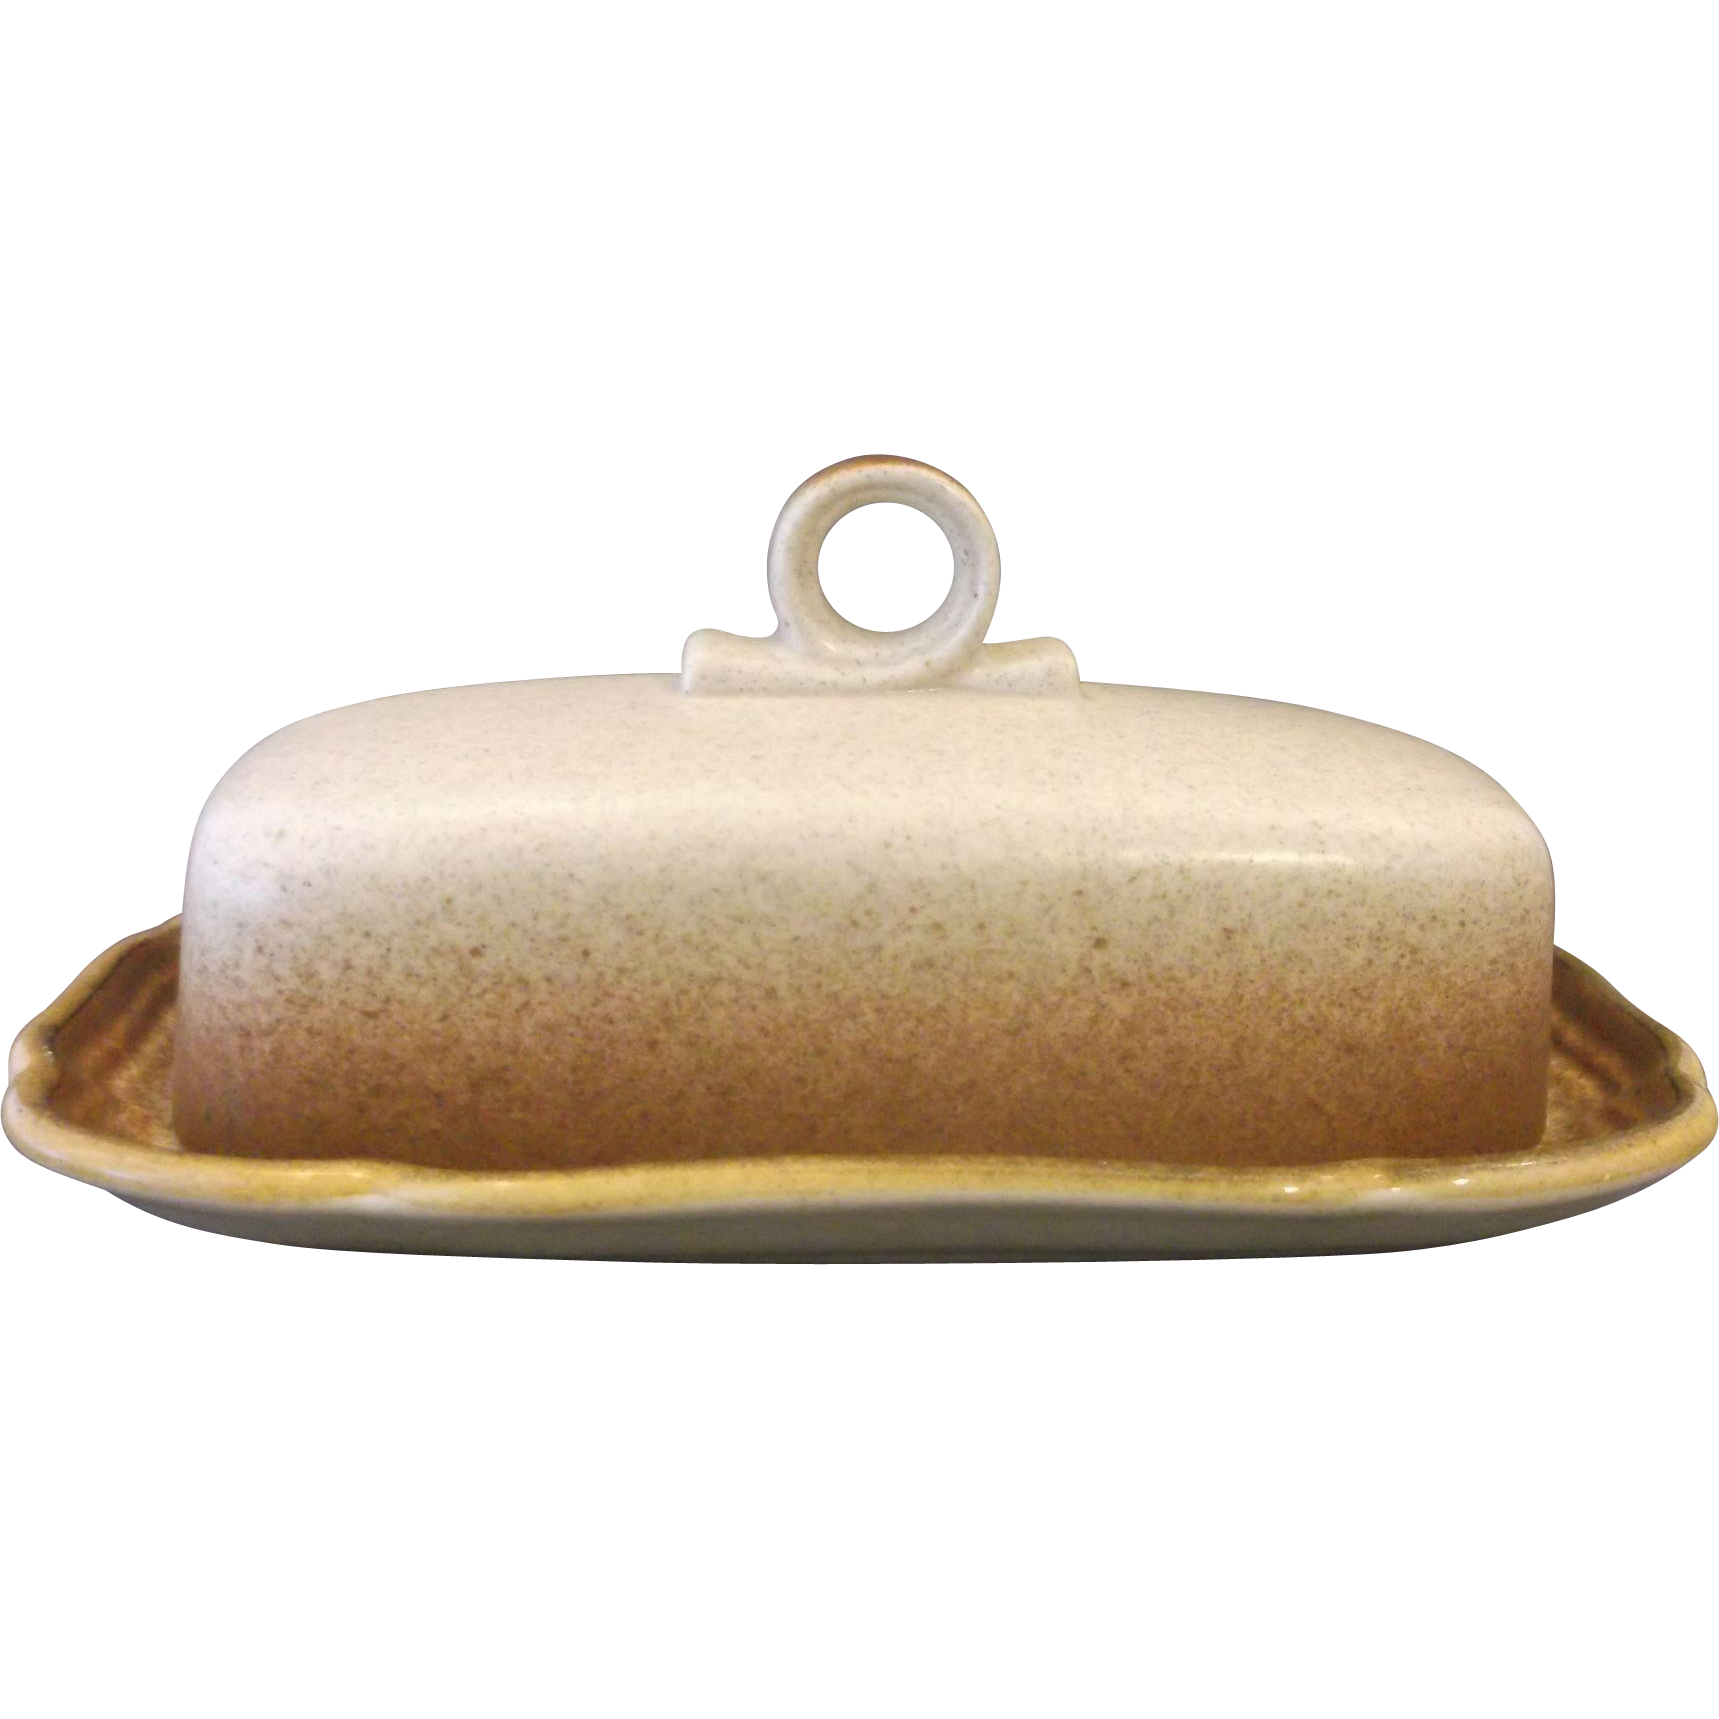 Mikasa Whole Wheat Covered Butter Dish E 8000 1 Stick Quarter LB